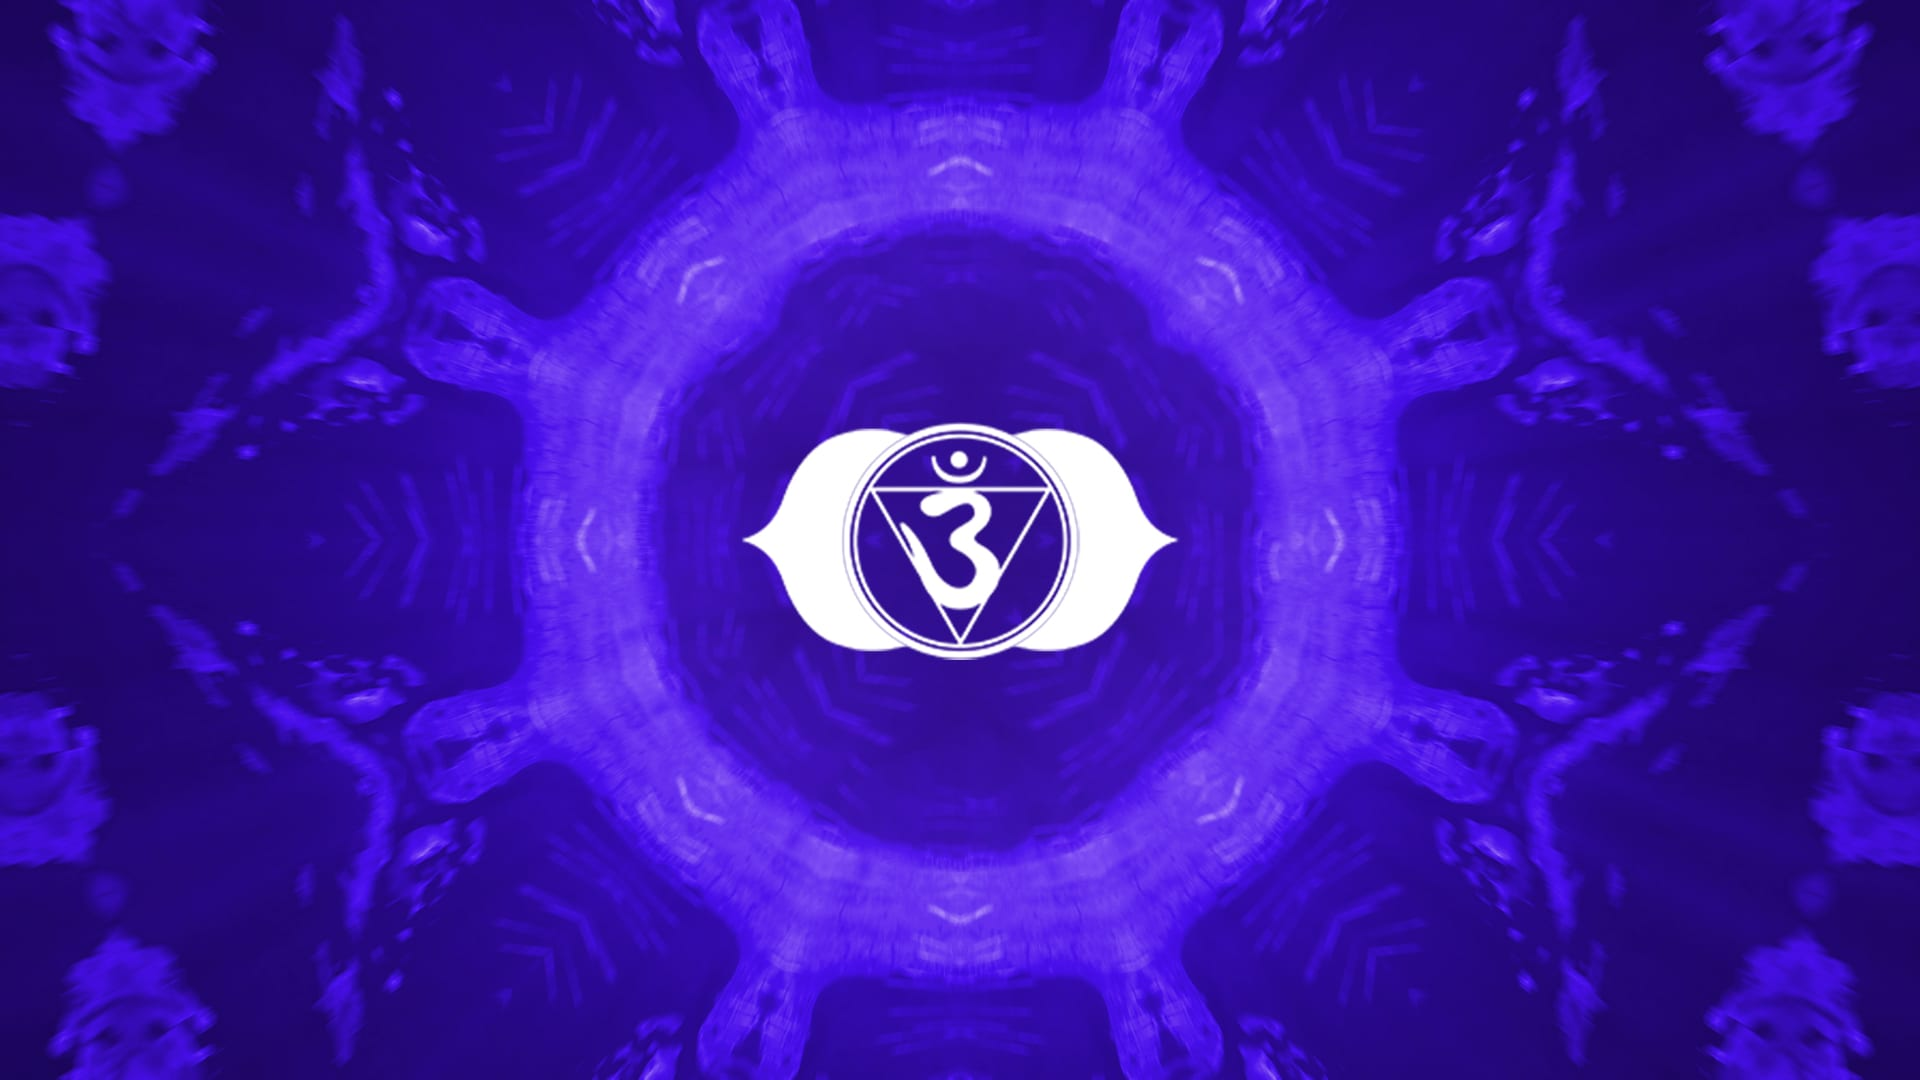 3rd Eye Chakra – A Detailed Guide to Healing your Sixth Chakra